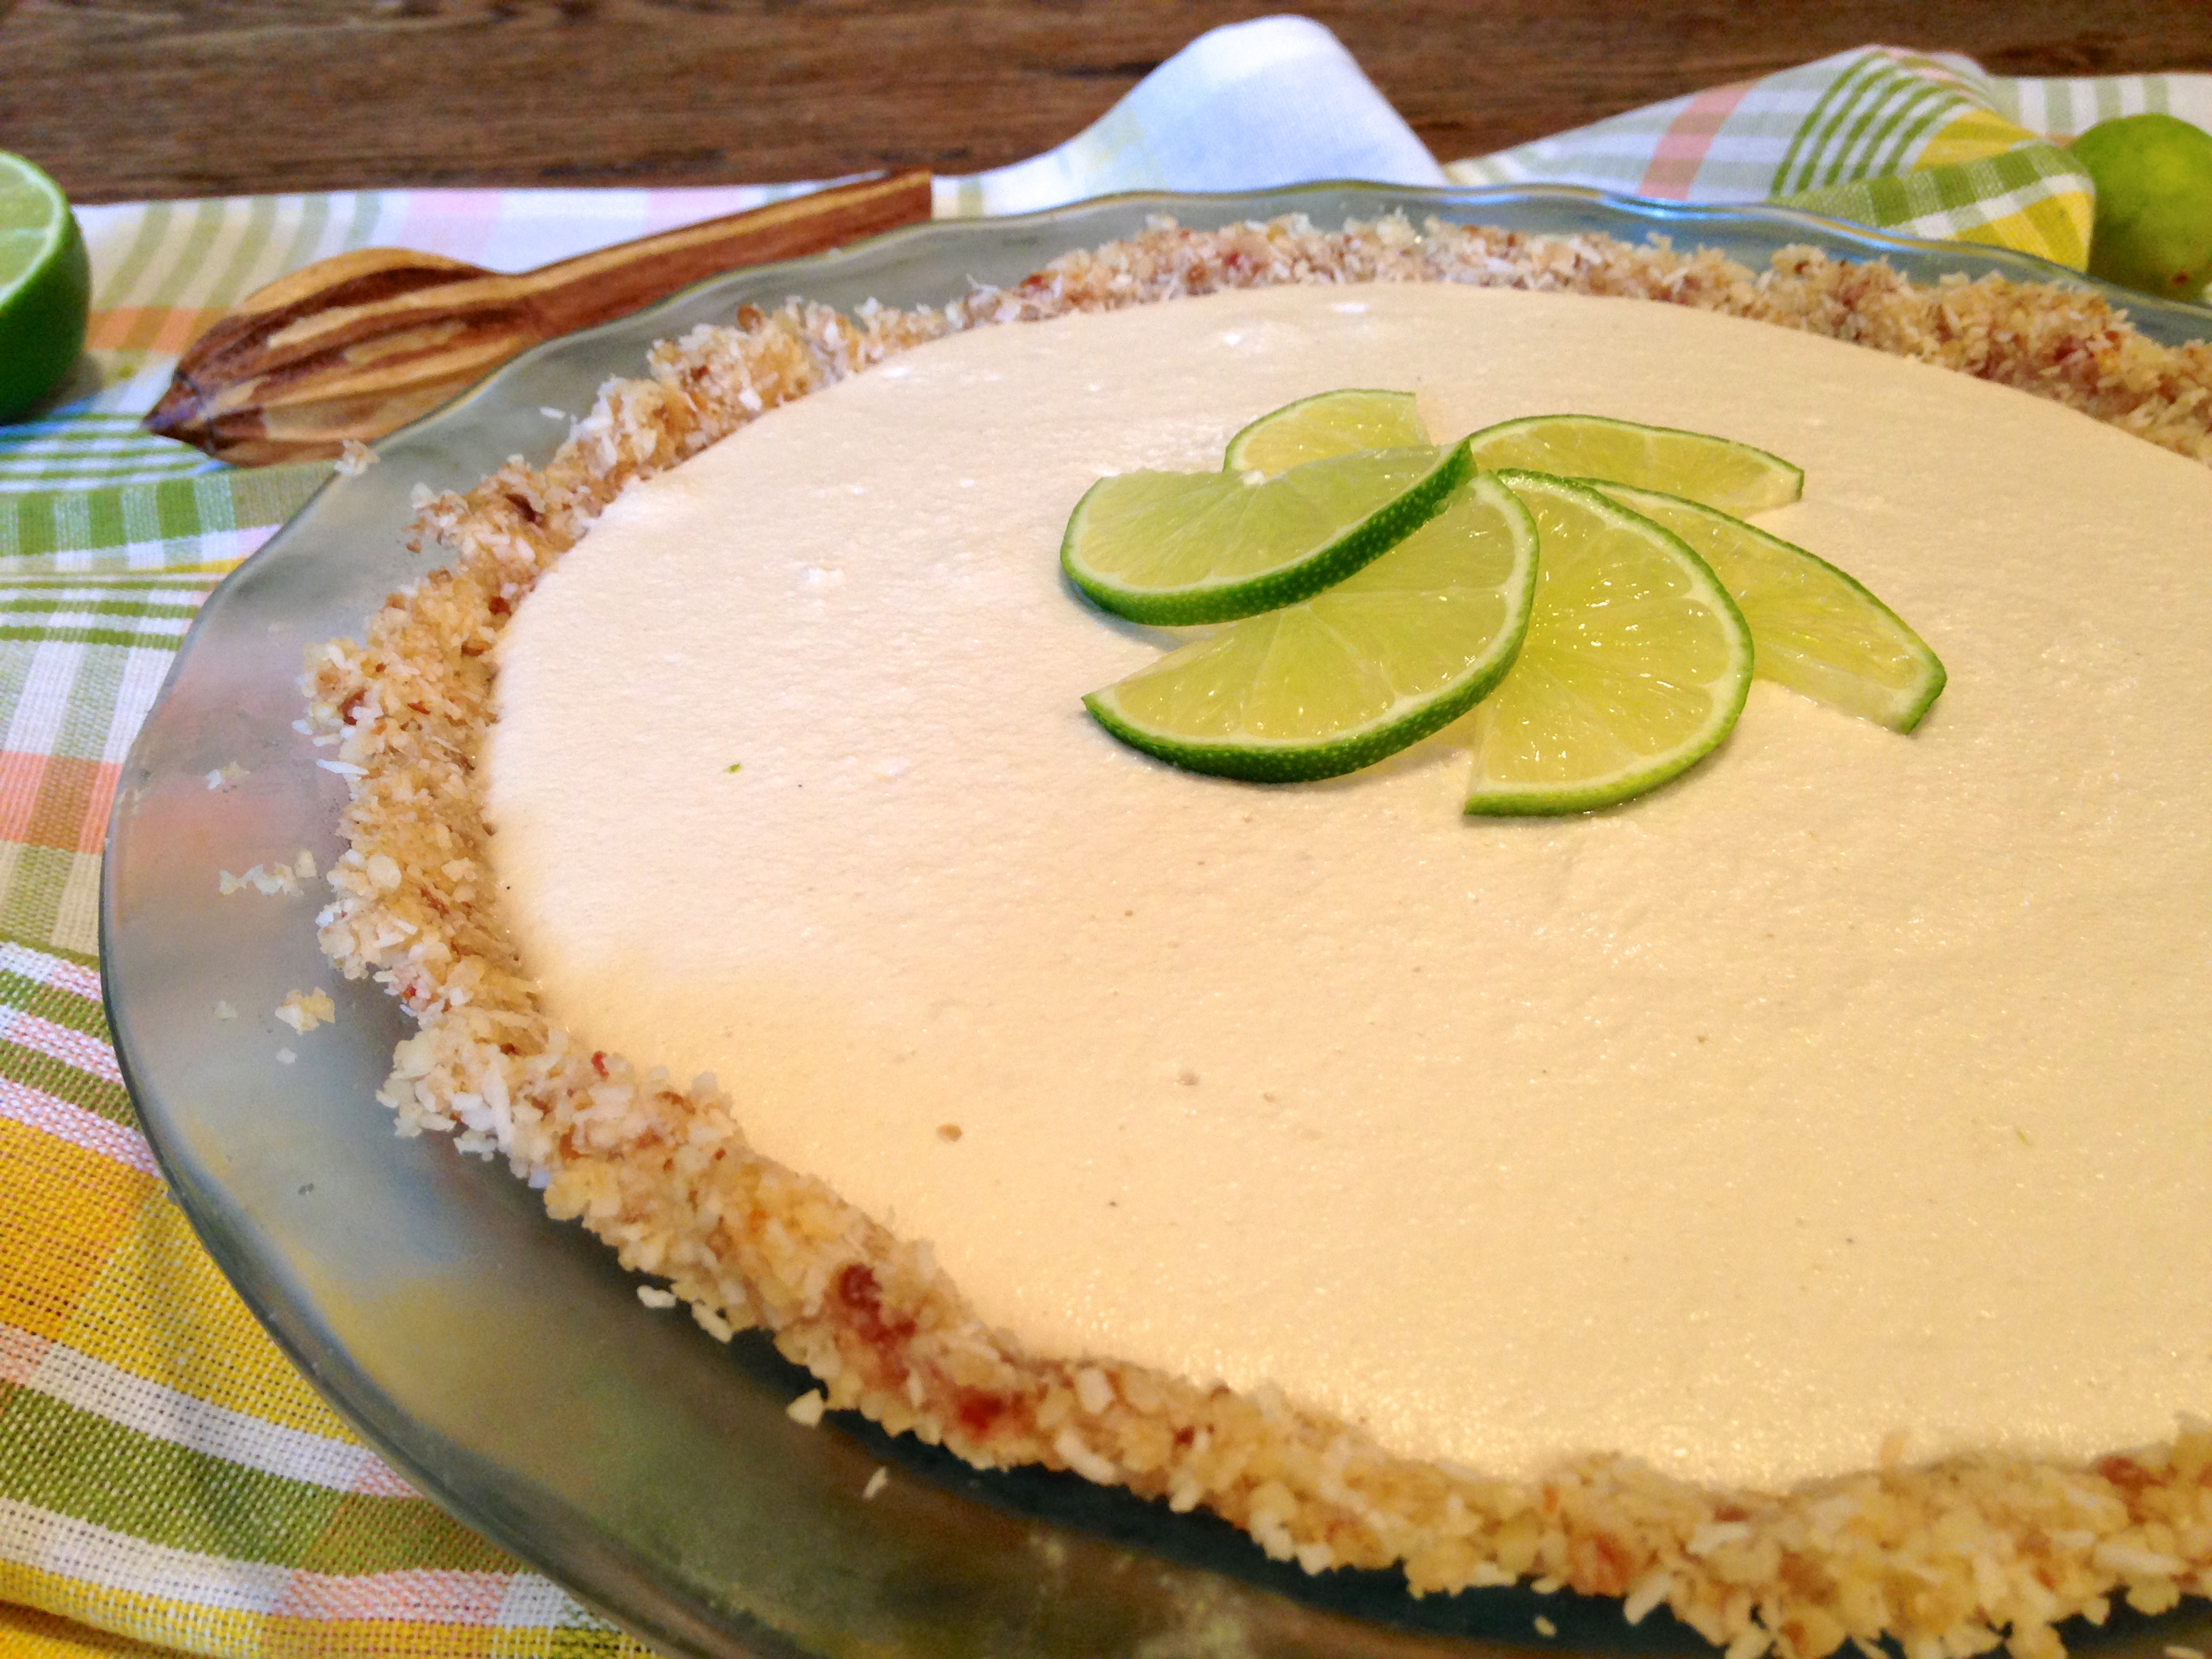 Coconut Macadamia Key Lime Pie